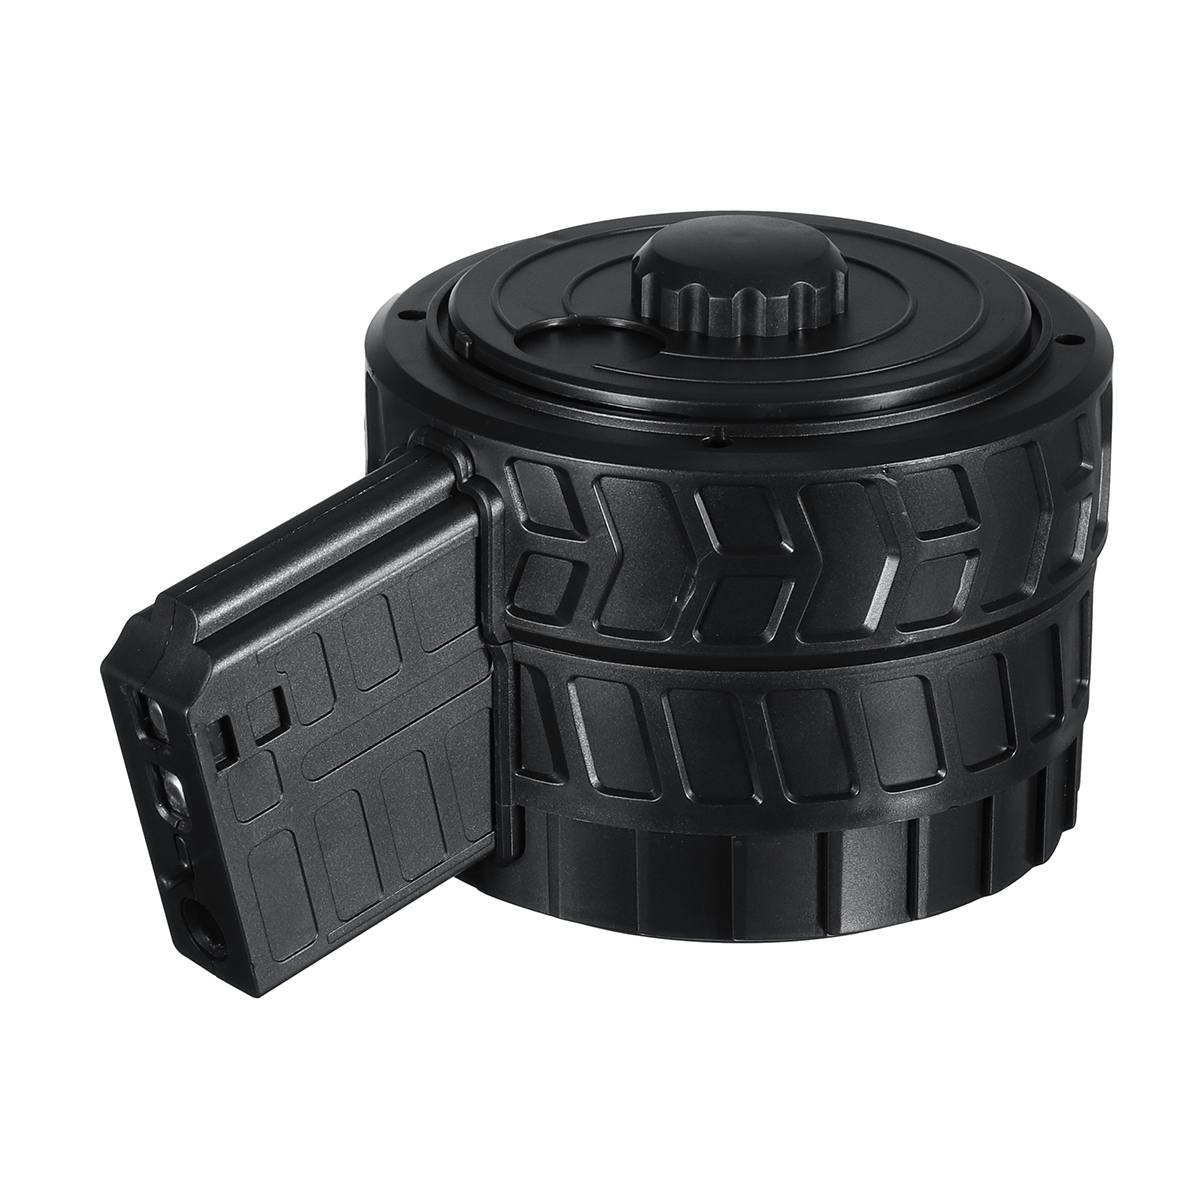 Drum Magazine Clip For STD 2th For PDW For JinMing8 M4A1 SCAR V2 Gel Ball Water Gu N Replacement Accessories Magazine